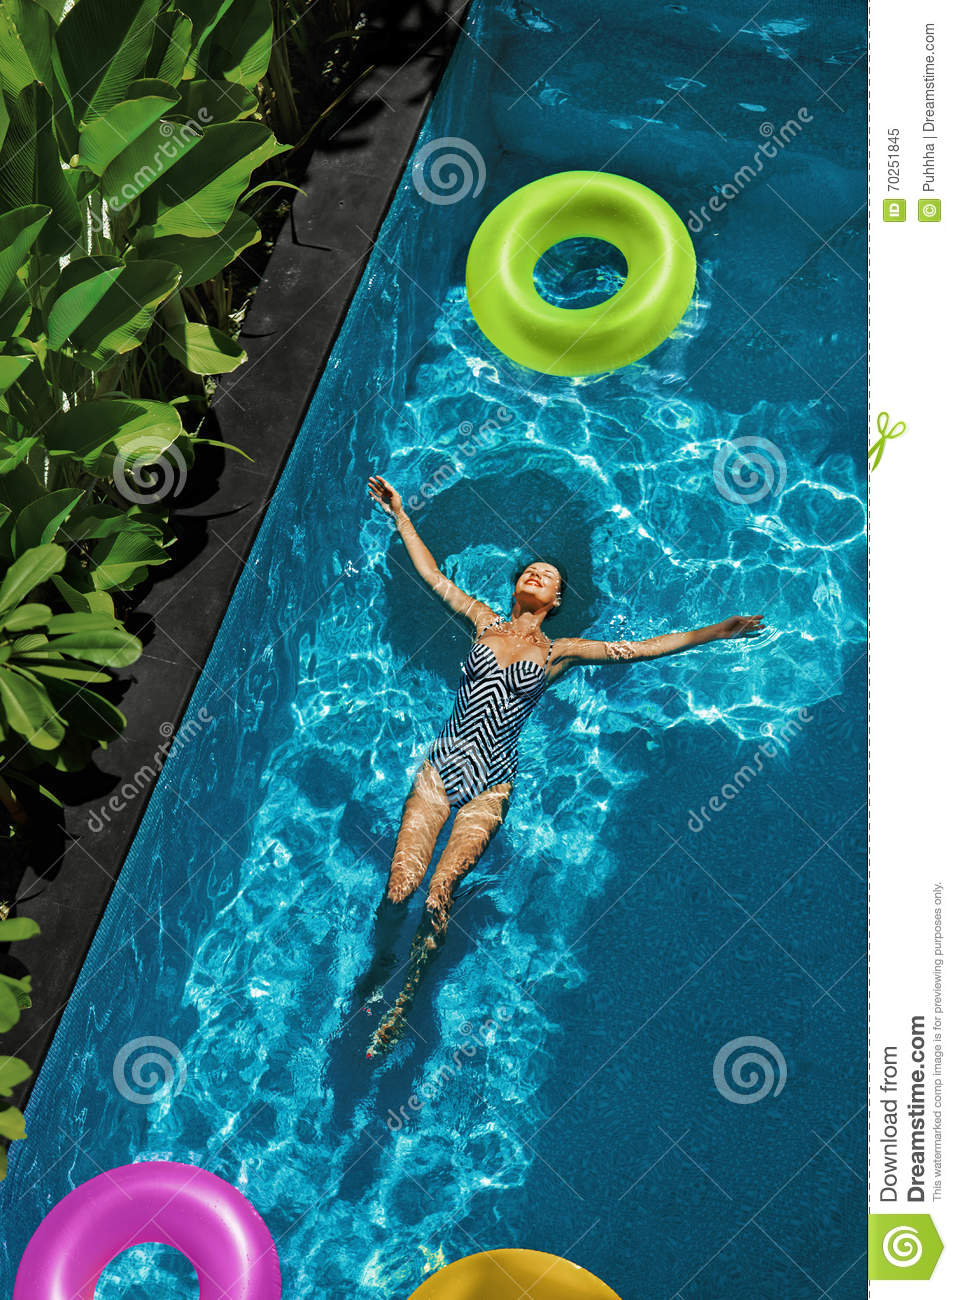 Summer Relax. Woman Floating, Swimming Pool Water. Summertime Holiday